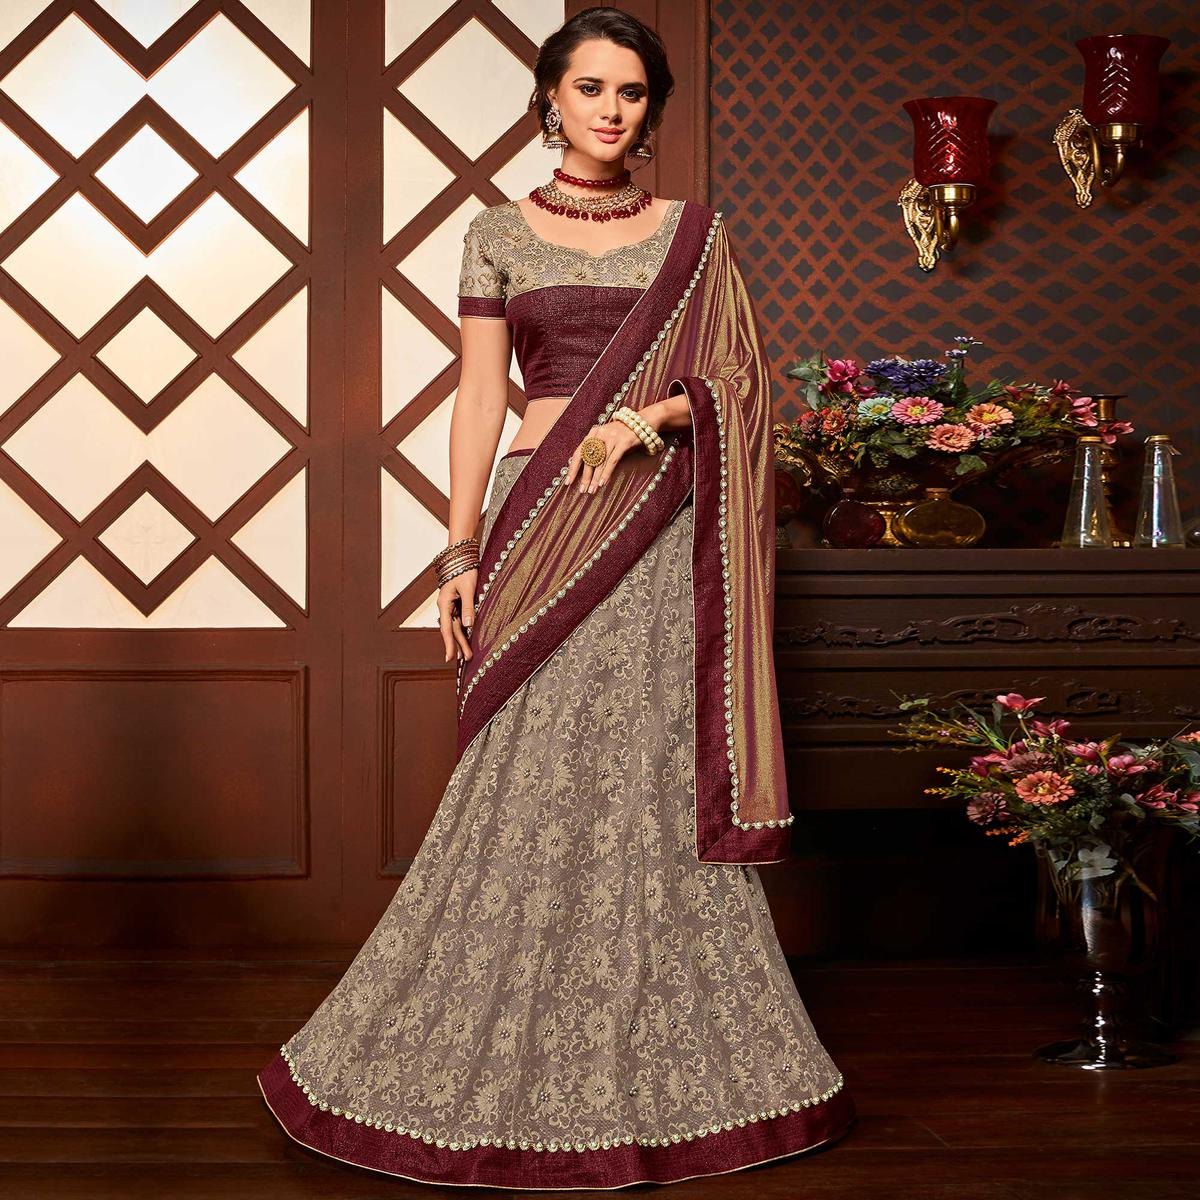 Majestic Maroon-Grey Colored Designer Embroidered Partywear Half-Half Net-Jacquard Lehenga Saree